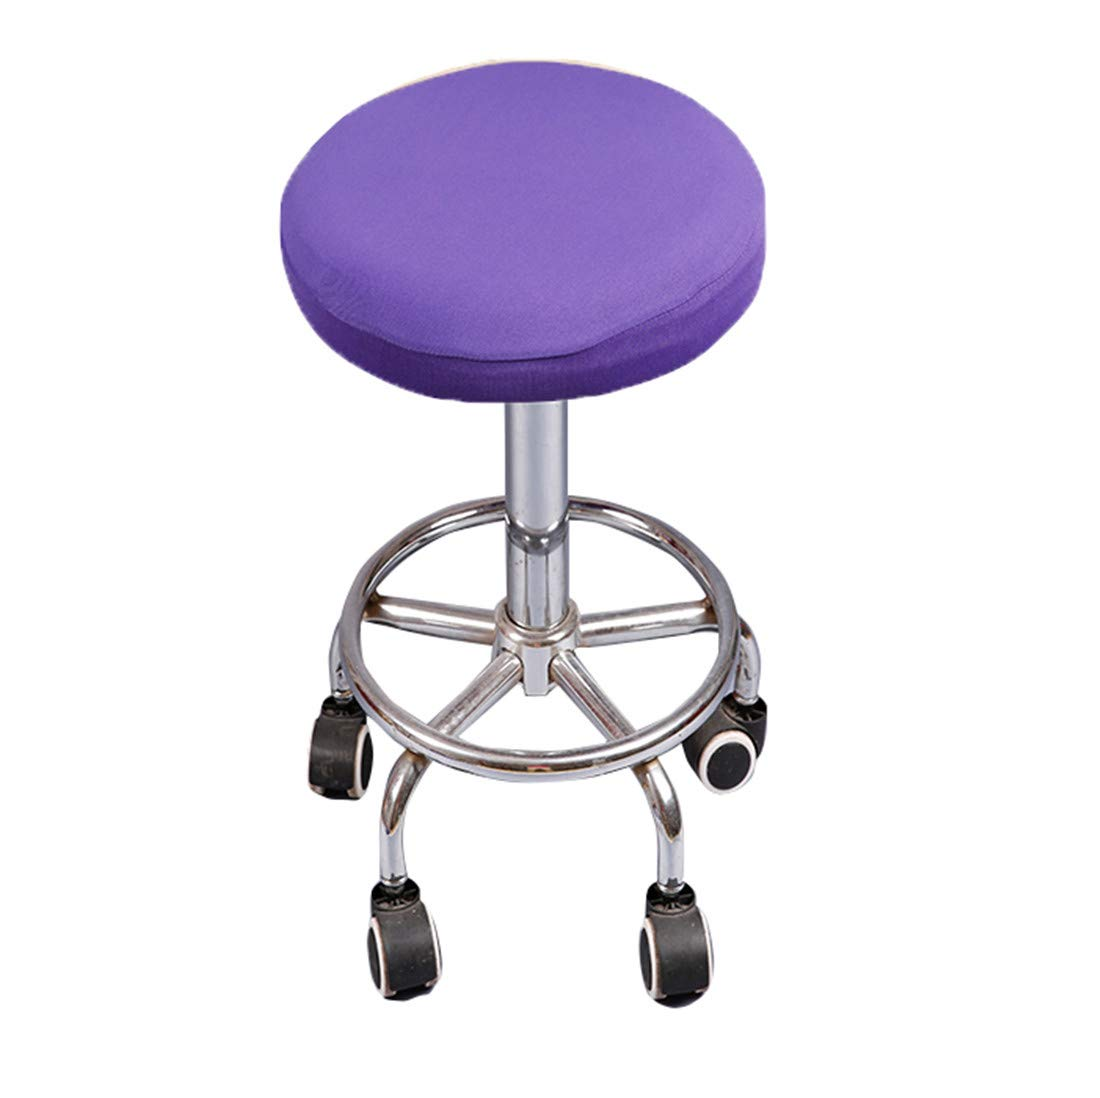 Deisy Dee Soft Stretchable Round Bar Stool Chair Covers Protectors Pack of 2 C097 (purple)